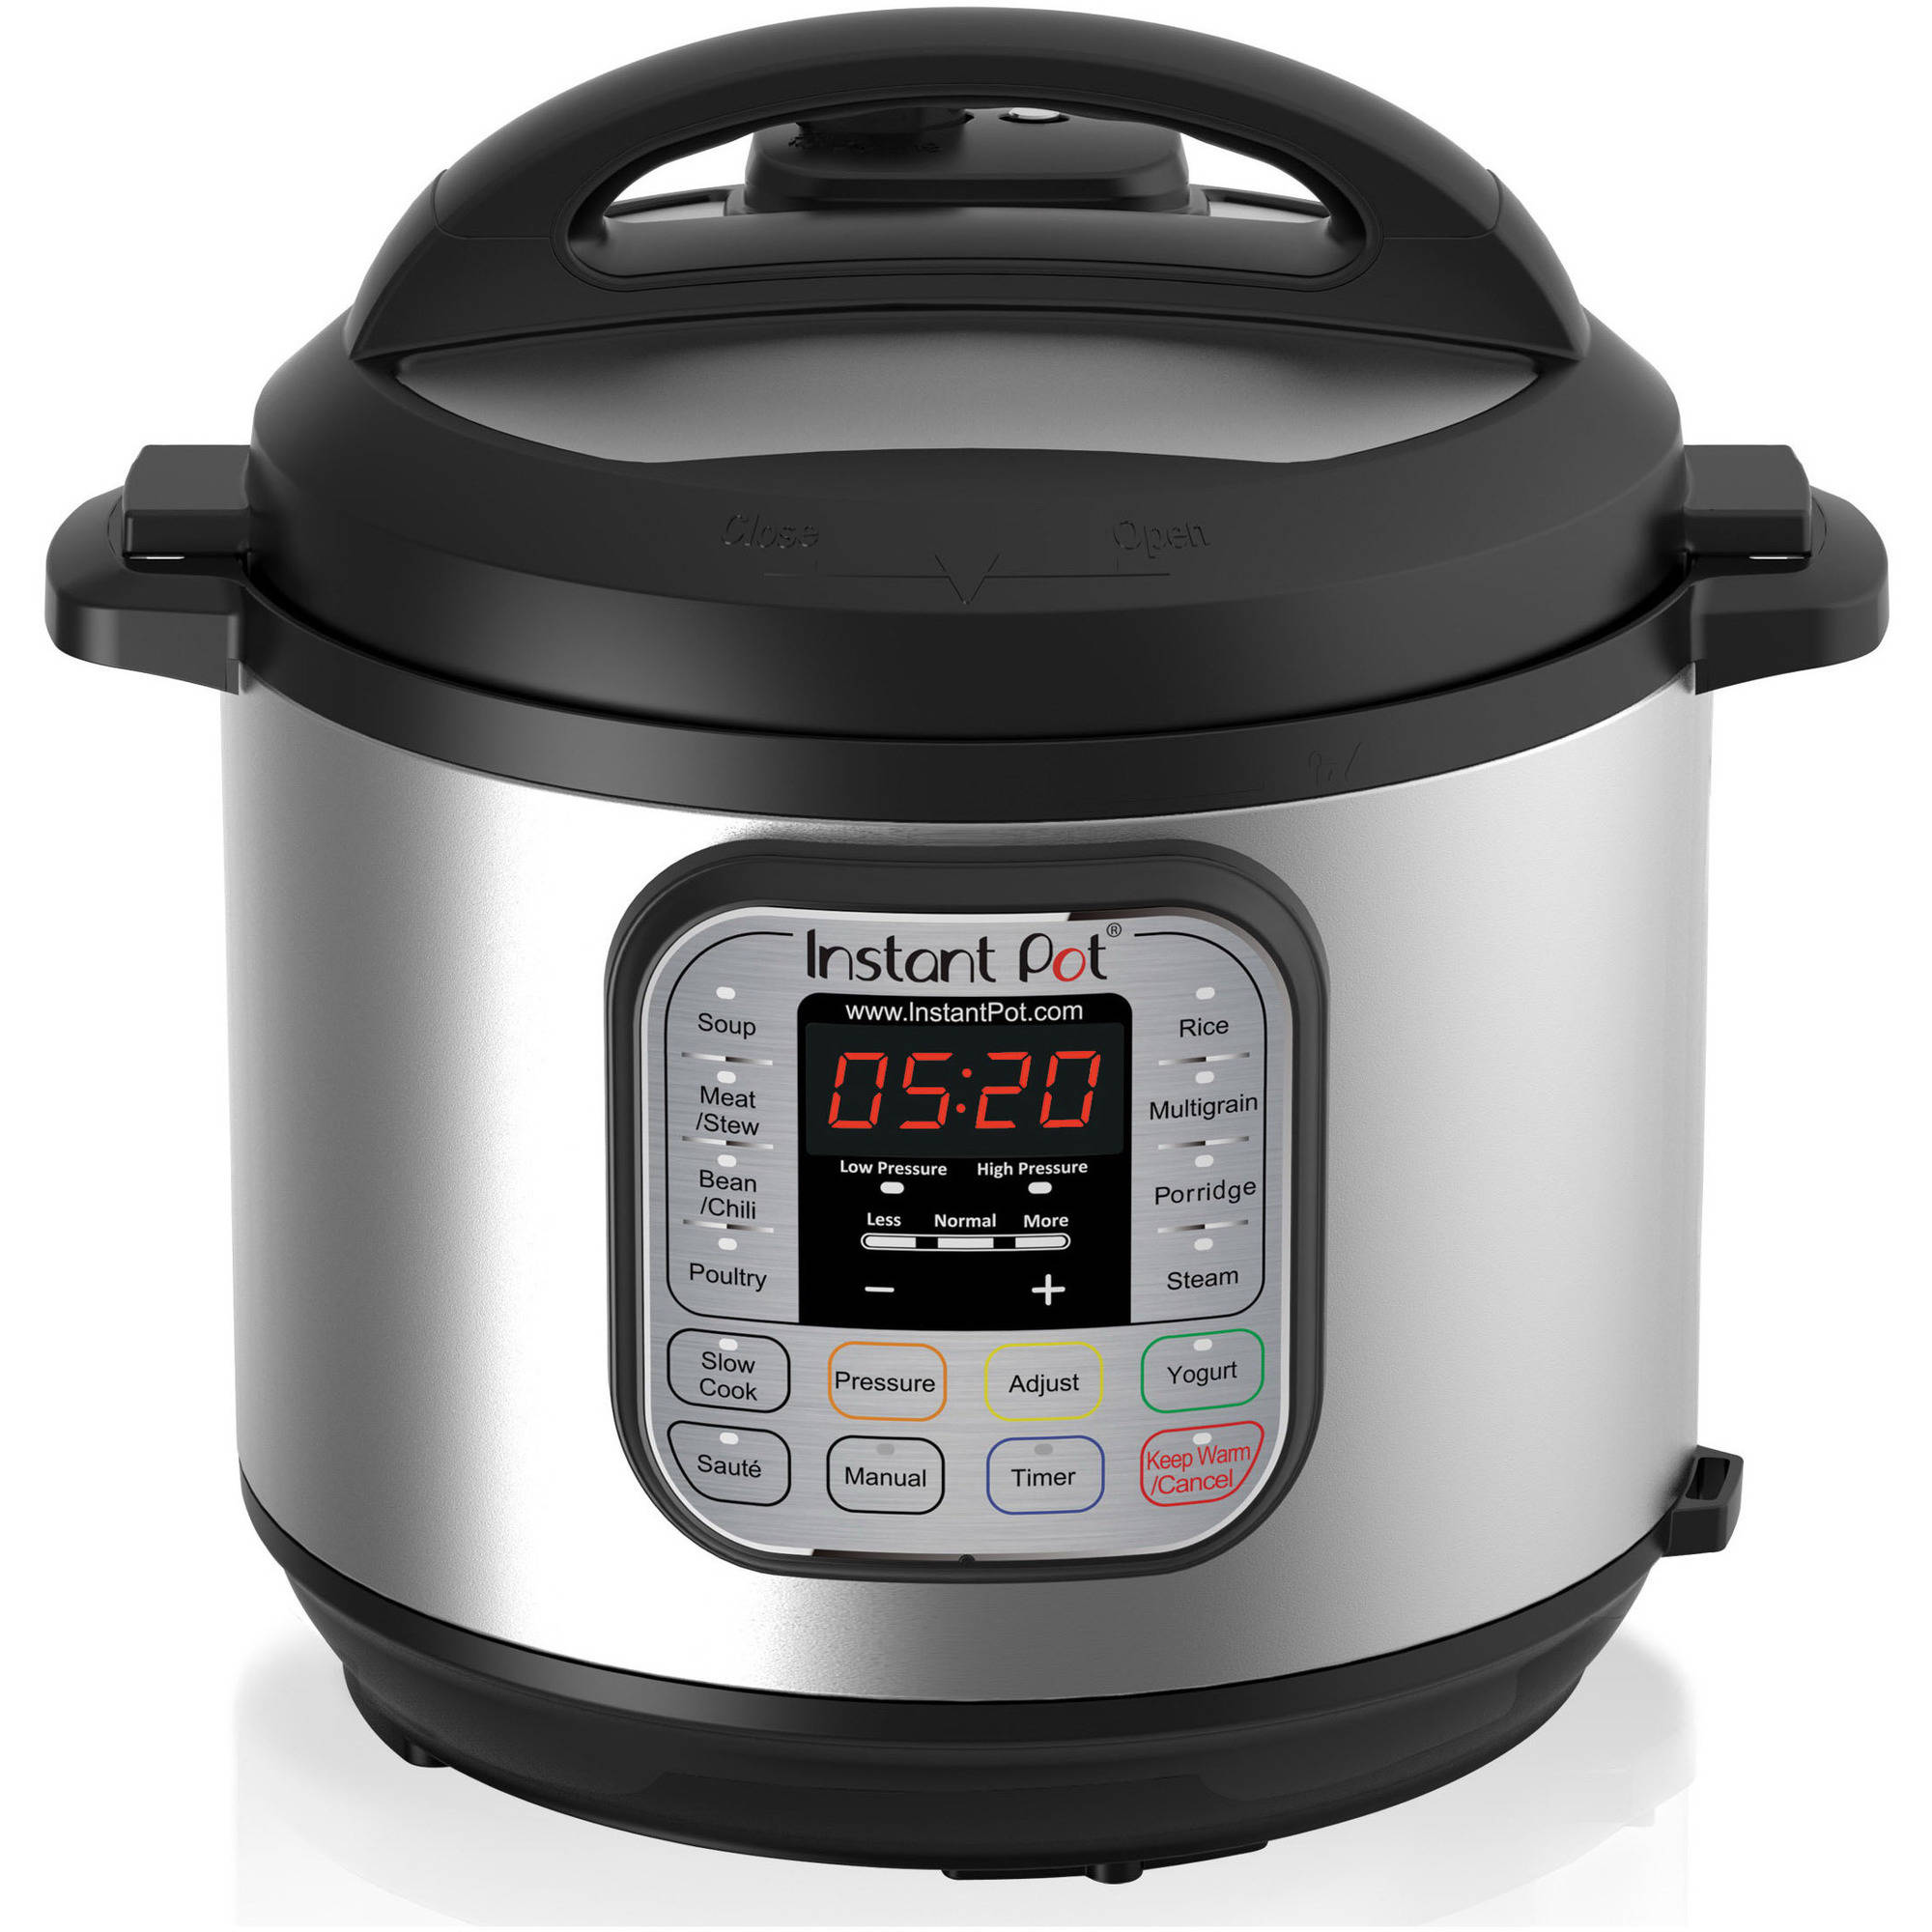 Instant Pot DUO60 6 Qt 7-in-1 Multi-Use Programmable Pressure Cooker, 6 Quart